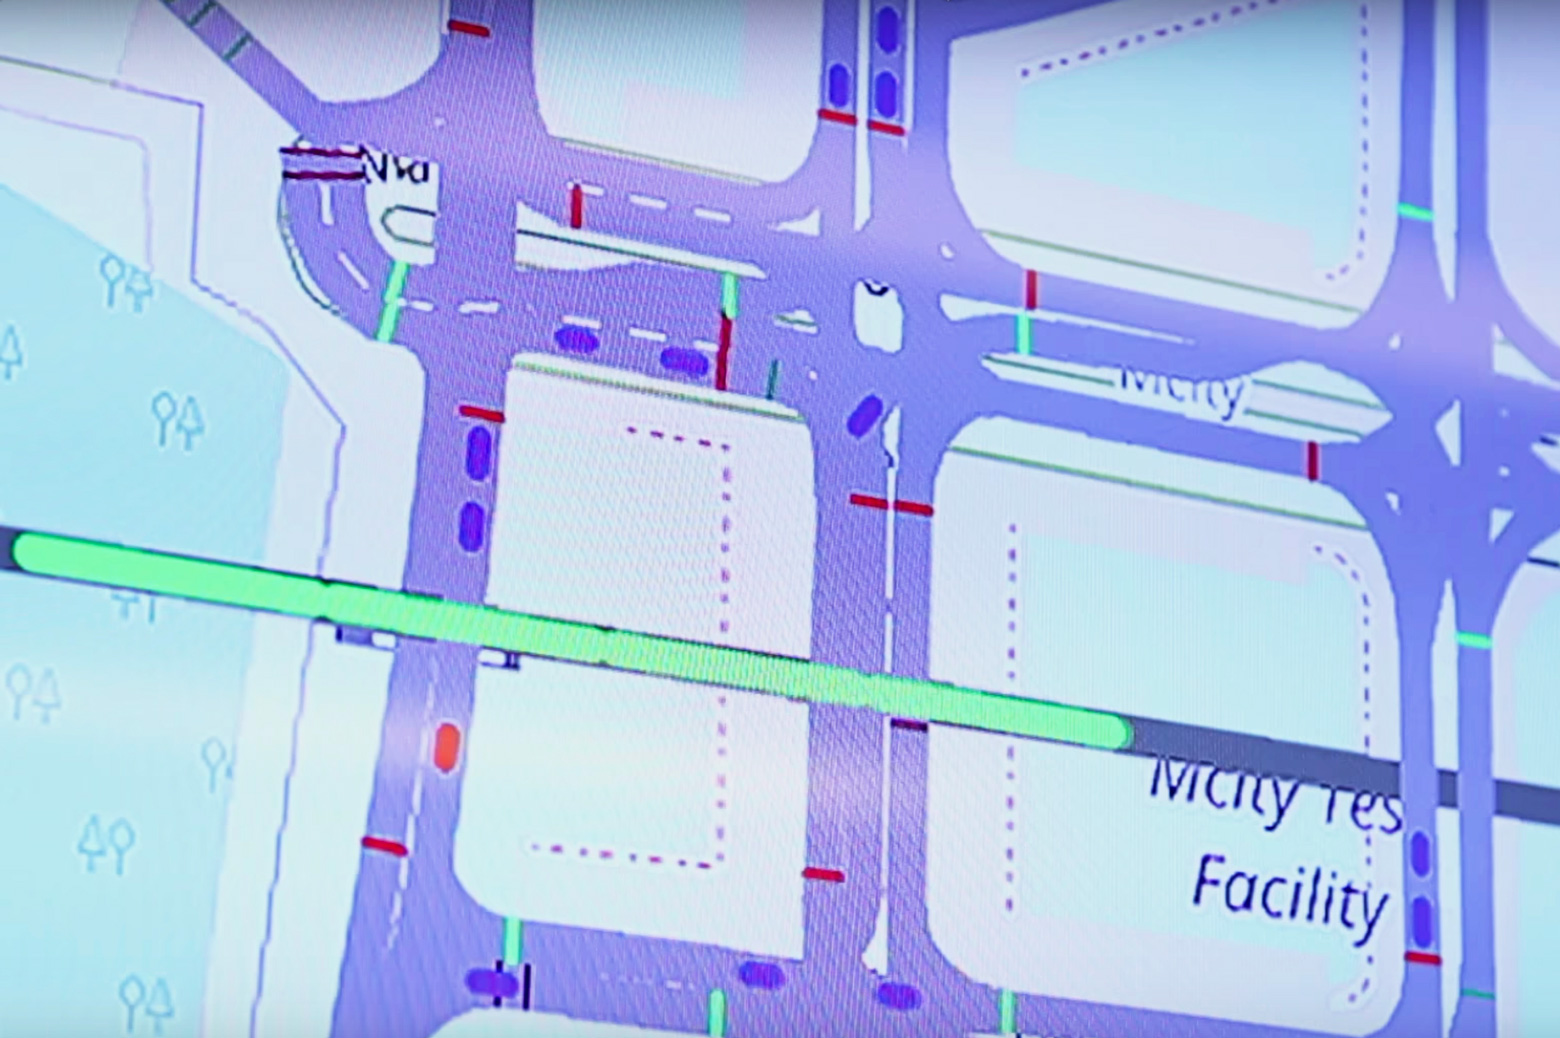 An image of the screen in the Michigan Traffic Lab while a virtual train (in green) travels through a rail crossing at Mcity. Real (red) and simulated vehicles (blue) react. Credit: Screen capture from a video by Mike Wood